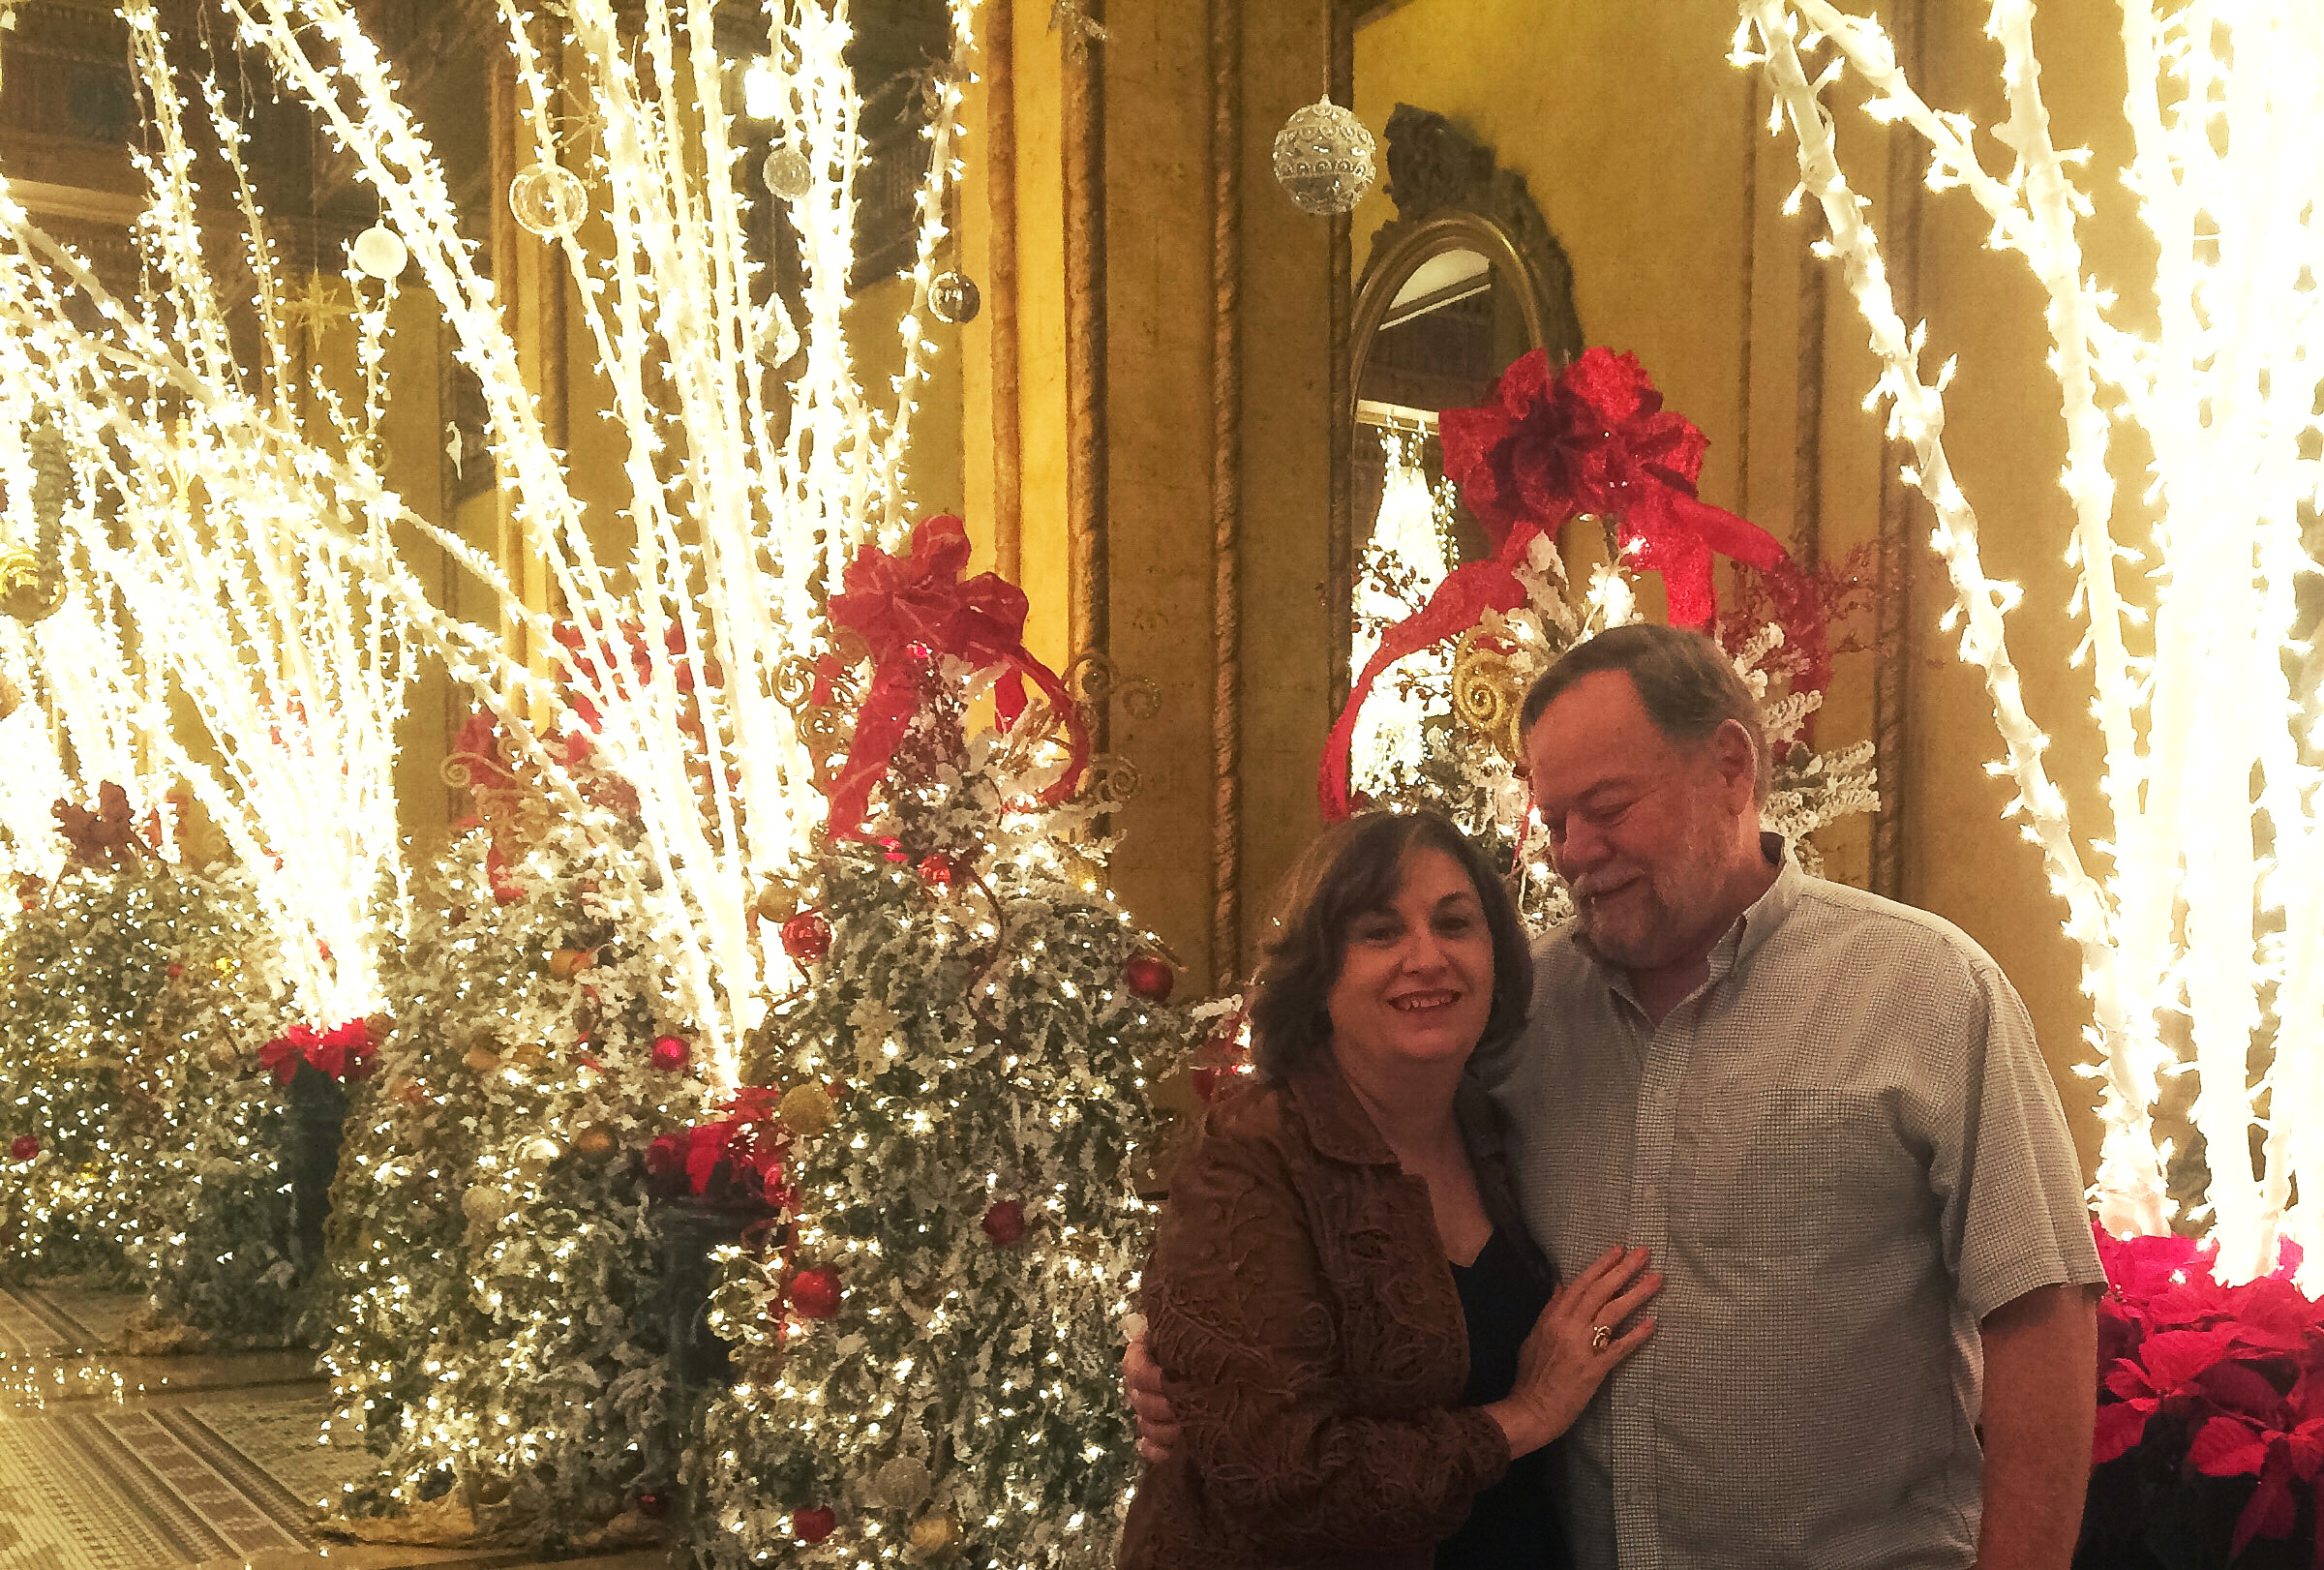 My Christmas present was spending Christmas night at the Roosevelt.